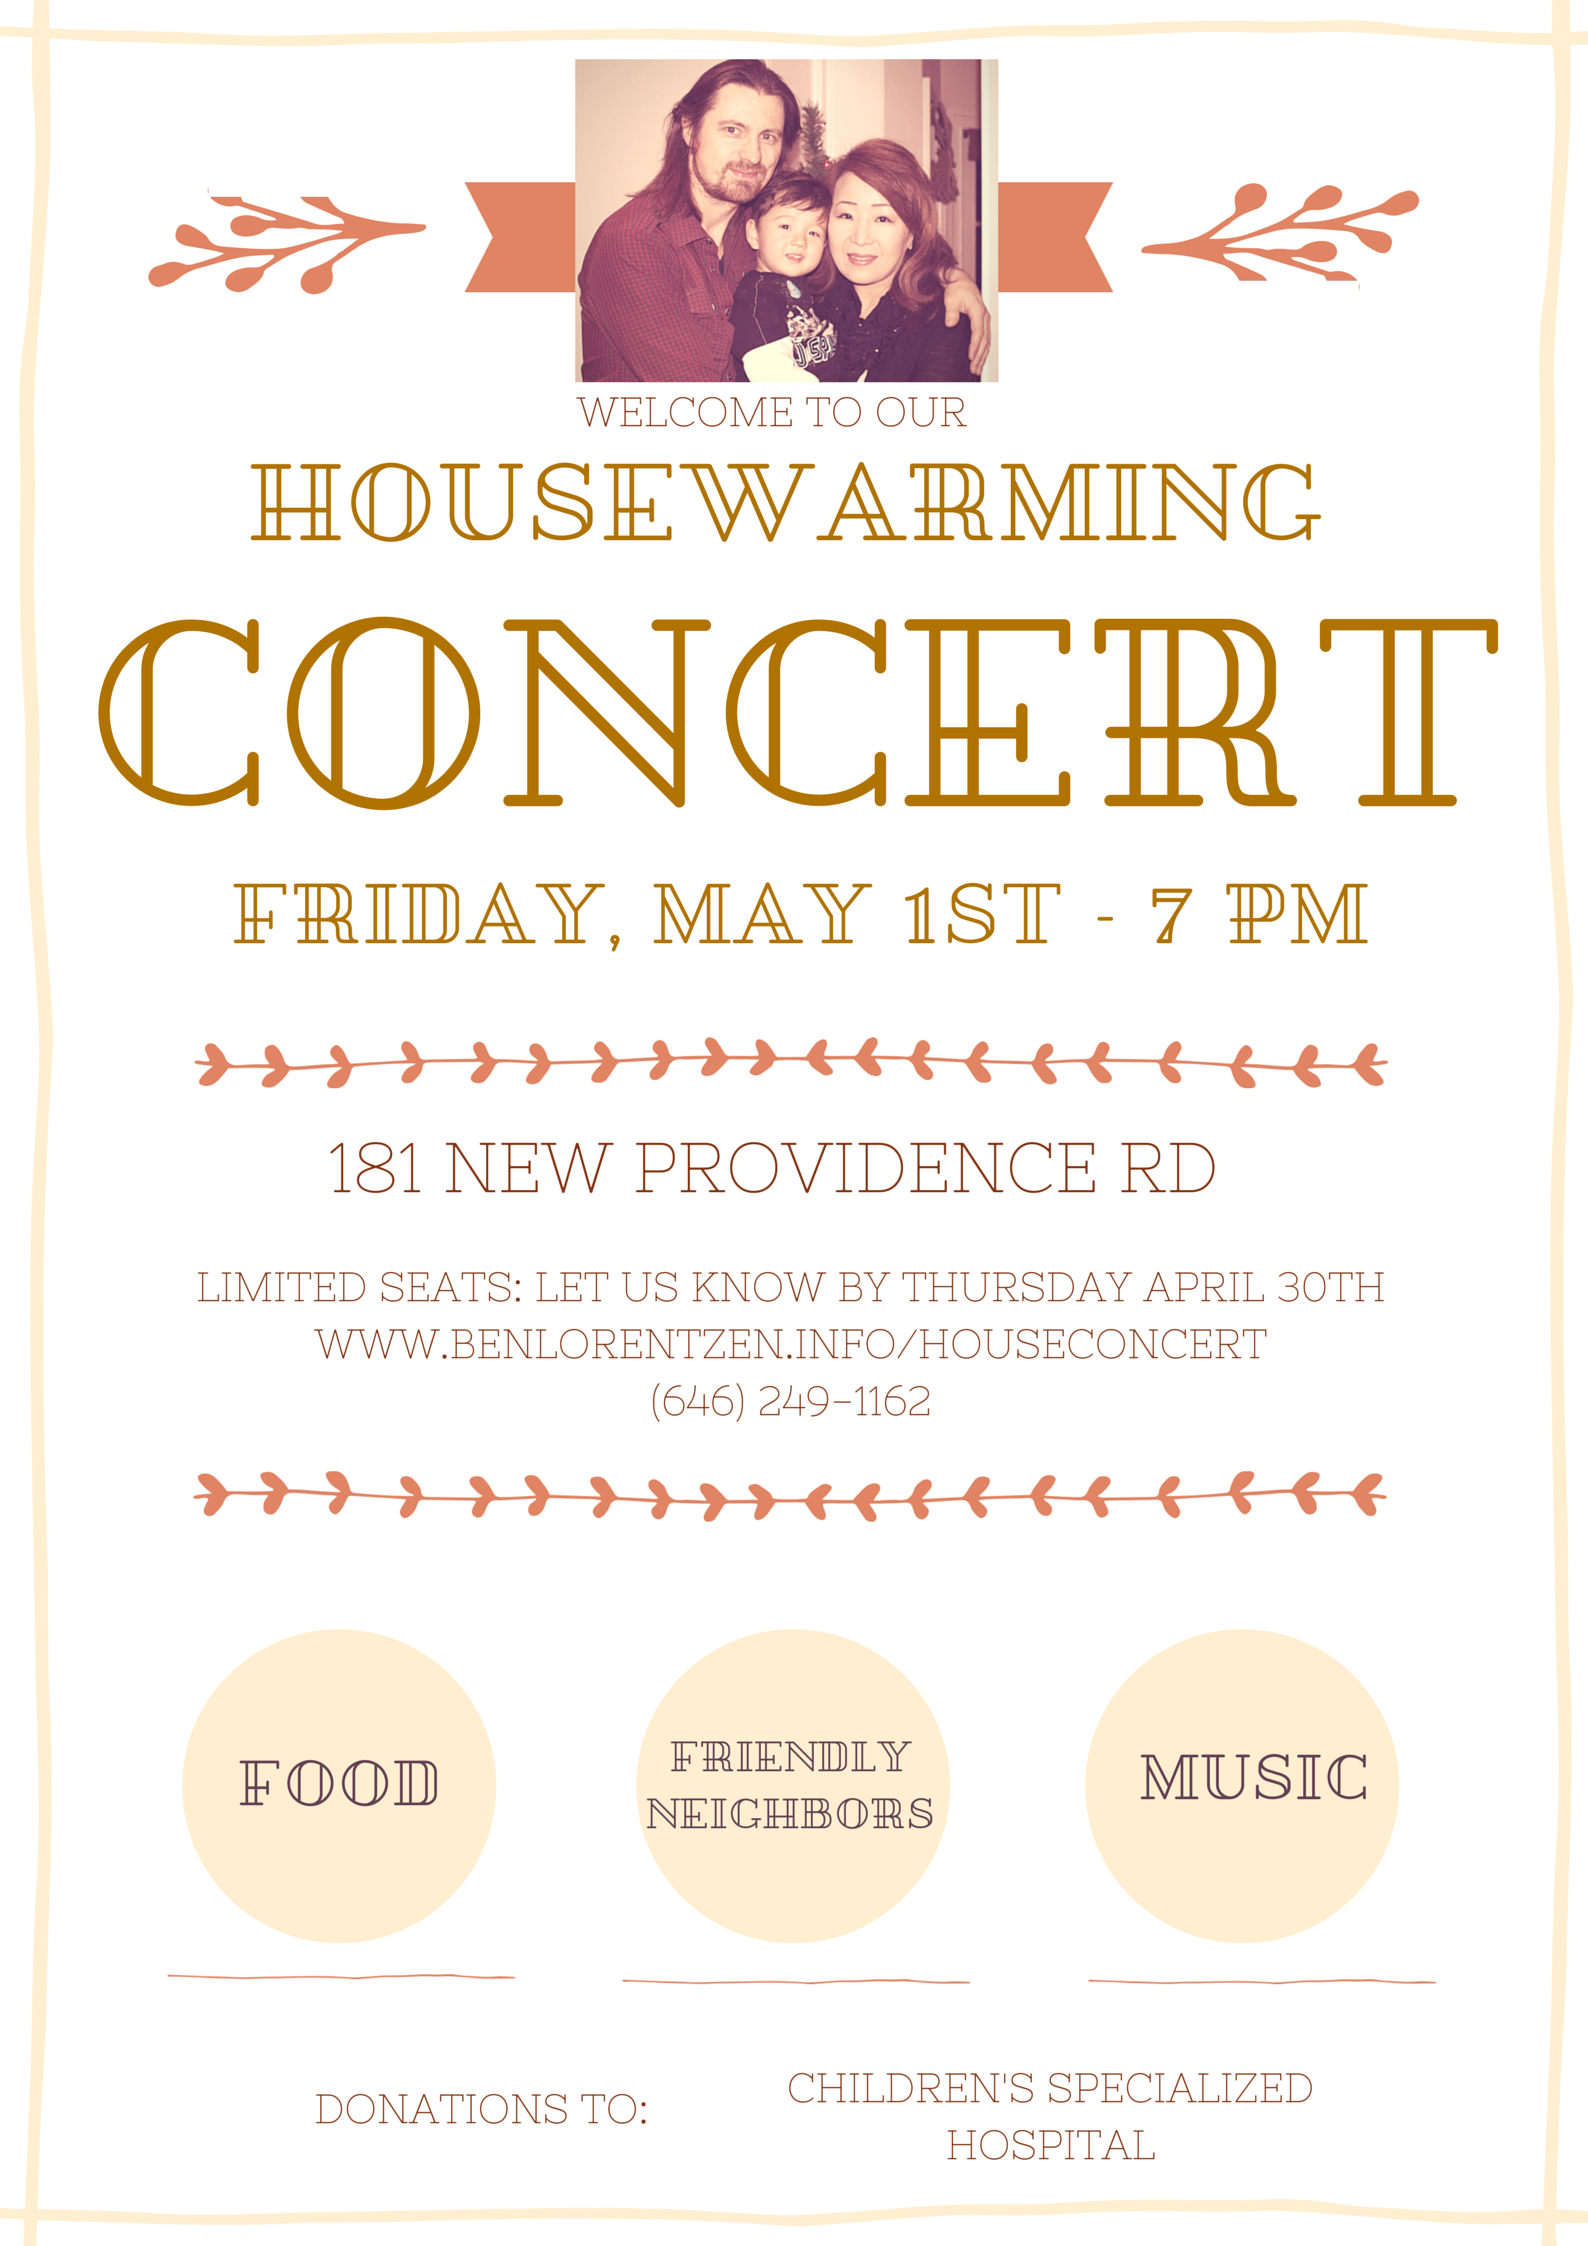 House warming Concert edit 2